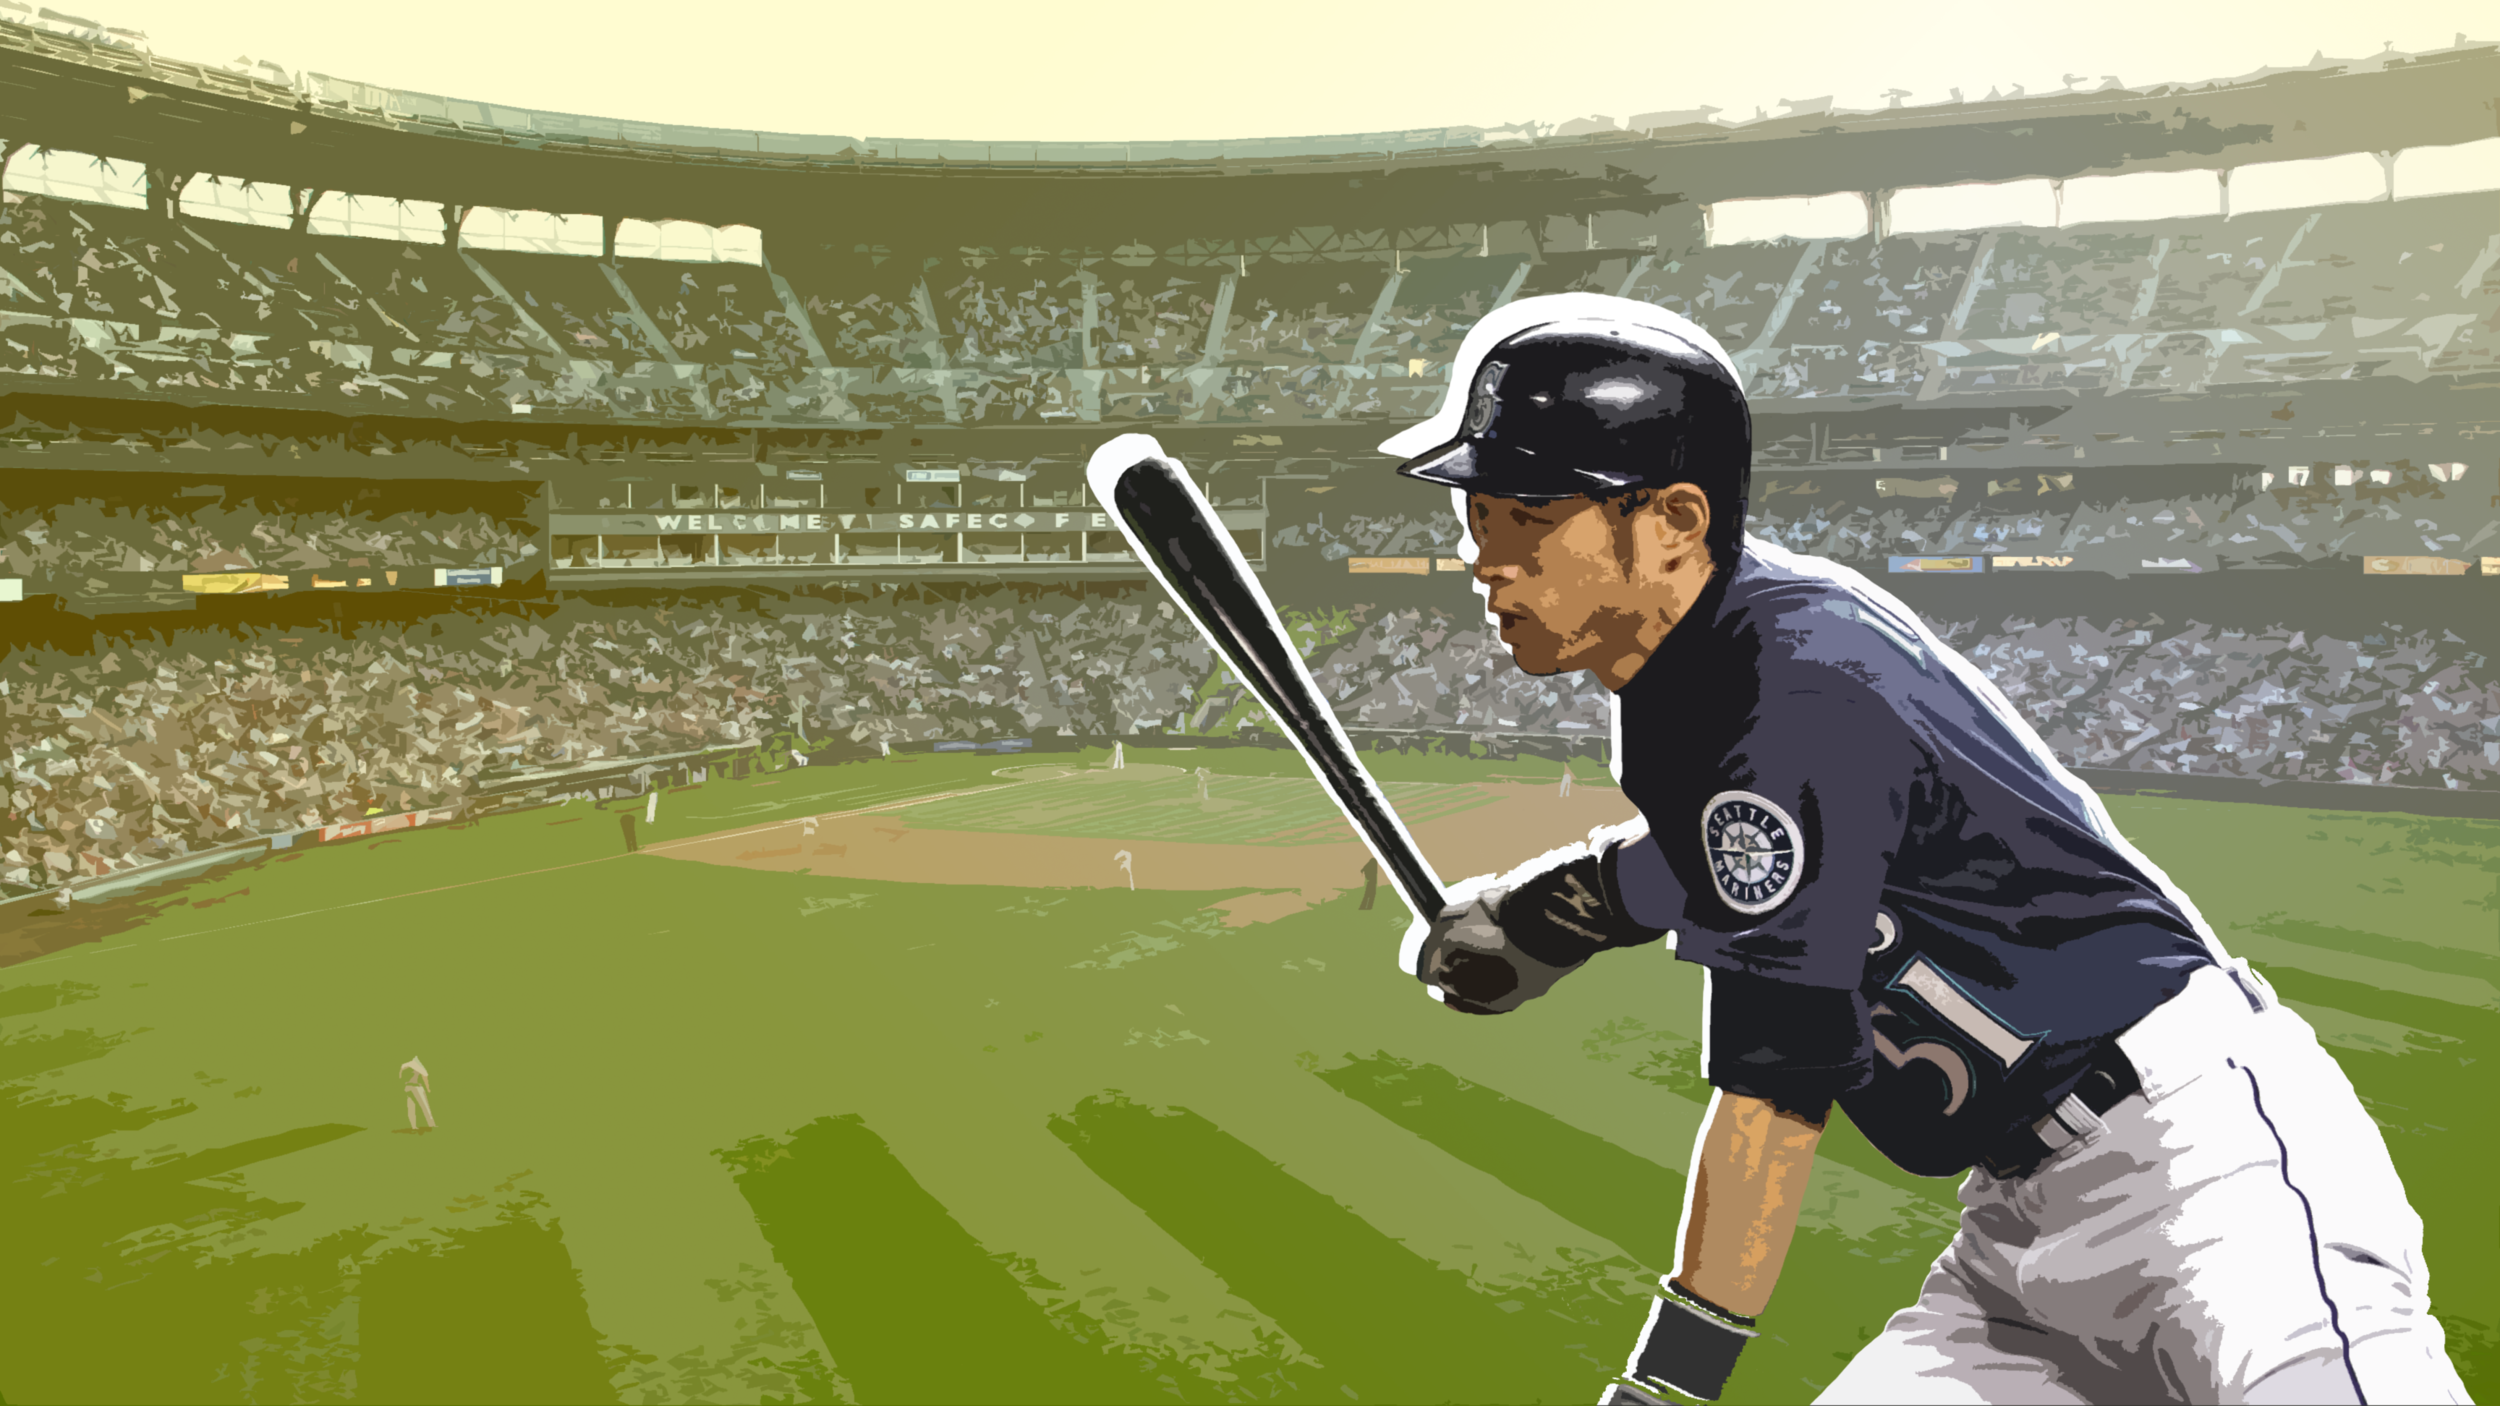 Interactive timeline of Ichiro's career -  Significant events that have occurred in the 18 years Ichiro's been playing professional baseball in the United States.